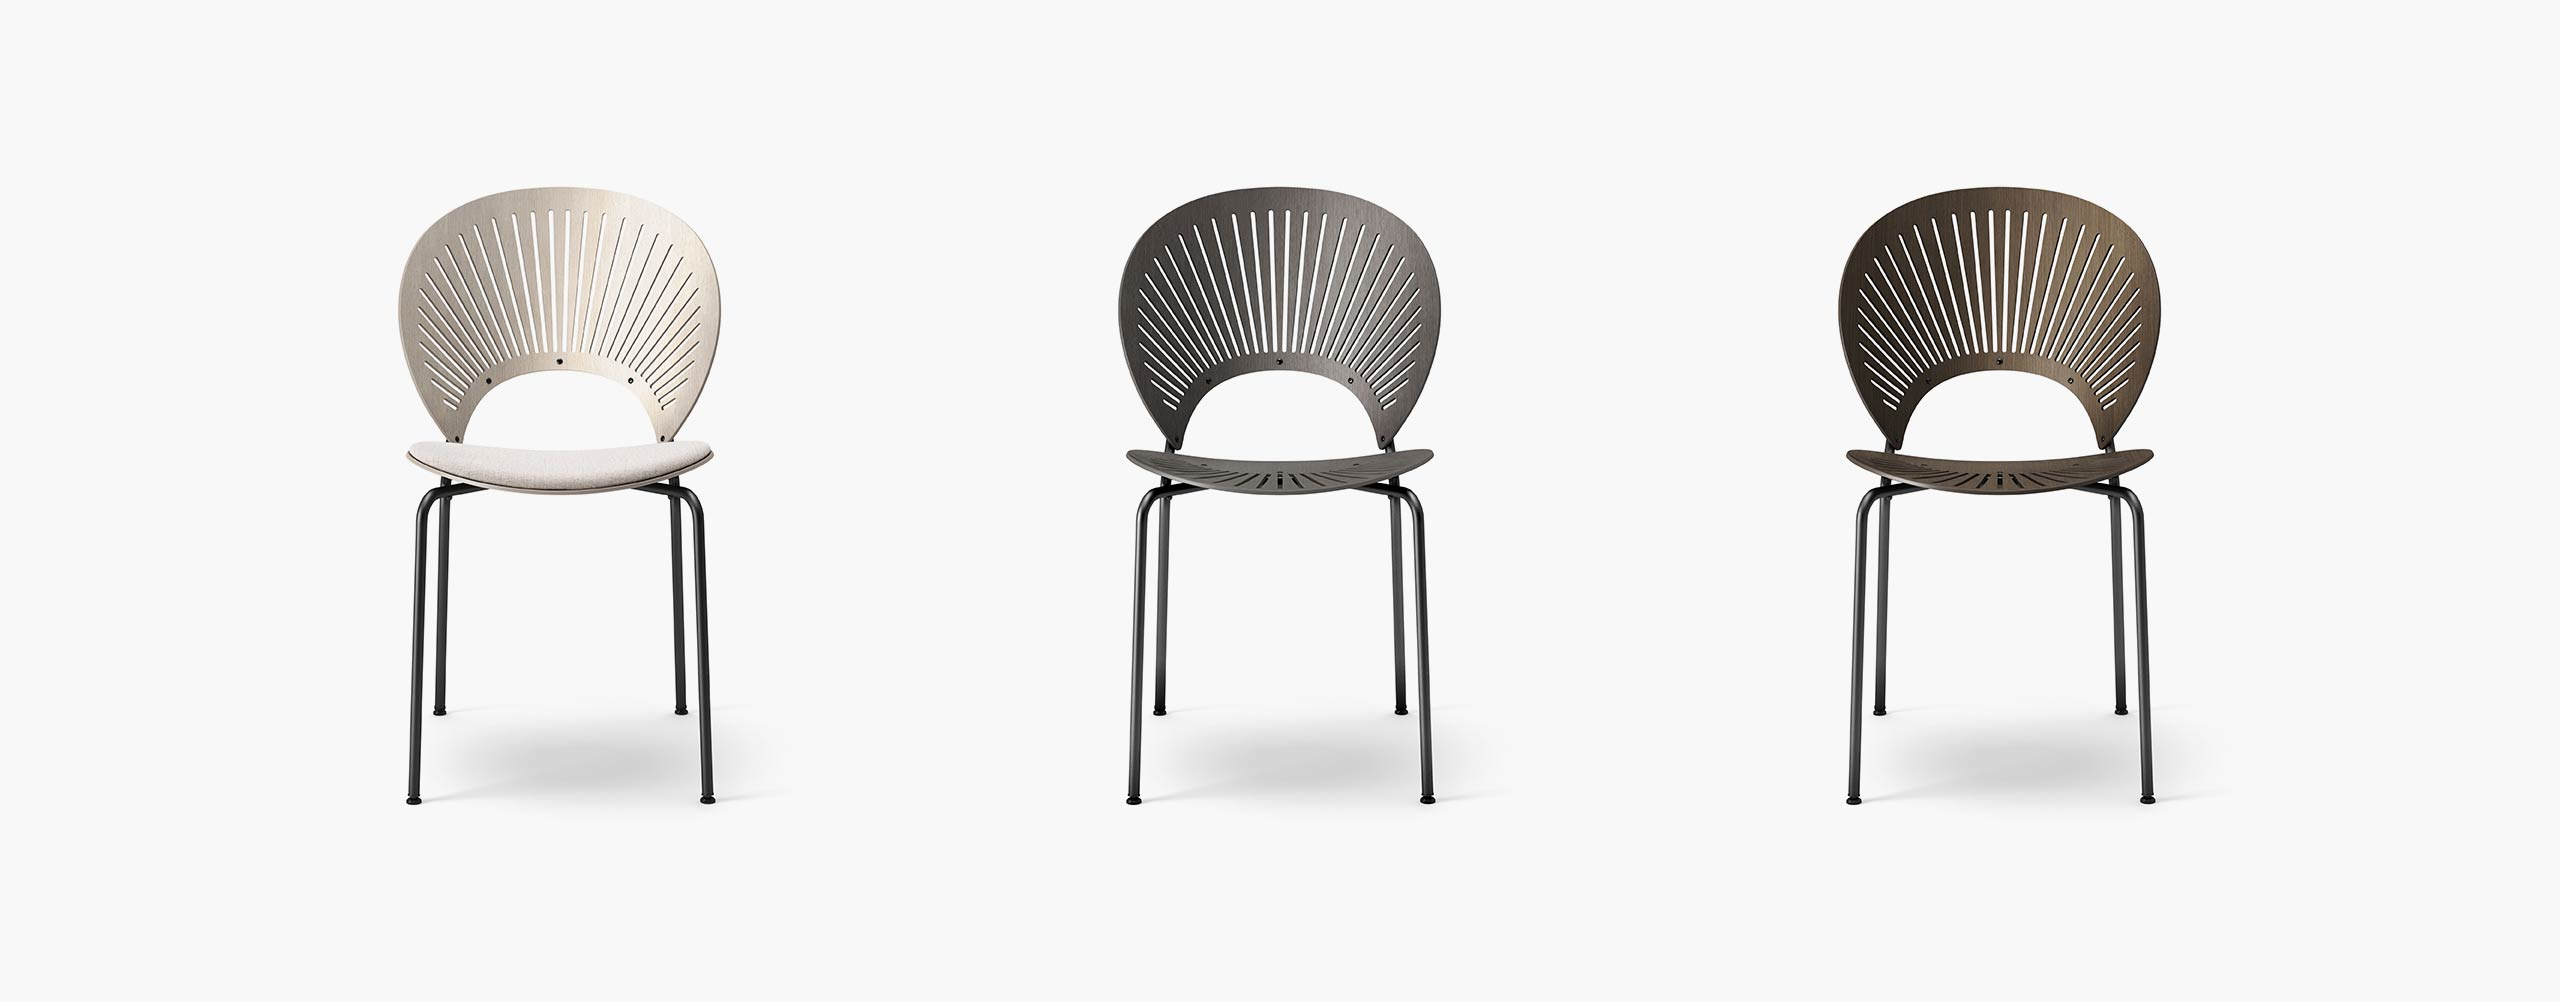 Fredericia's Trinidad chair - all variations - CGI & 3d model by Design Connected